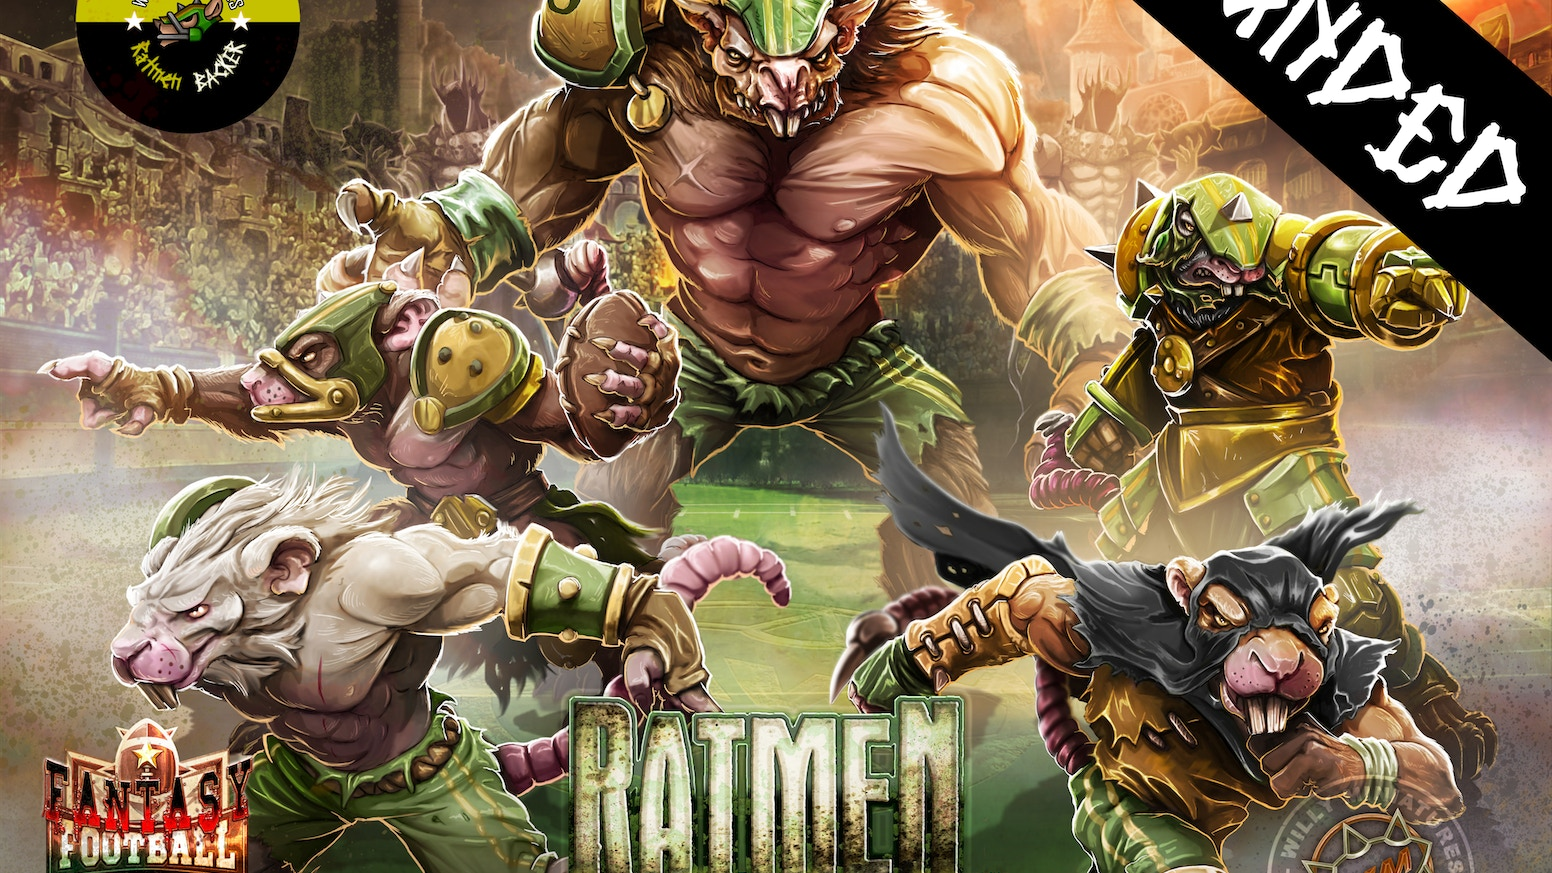 Willy Miniatures brings you a complete Ratmen Team. All the players you need, without duplicate models and made in glorious metal!!!